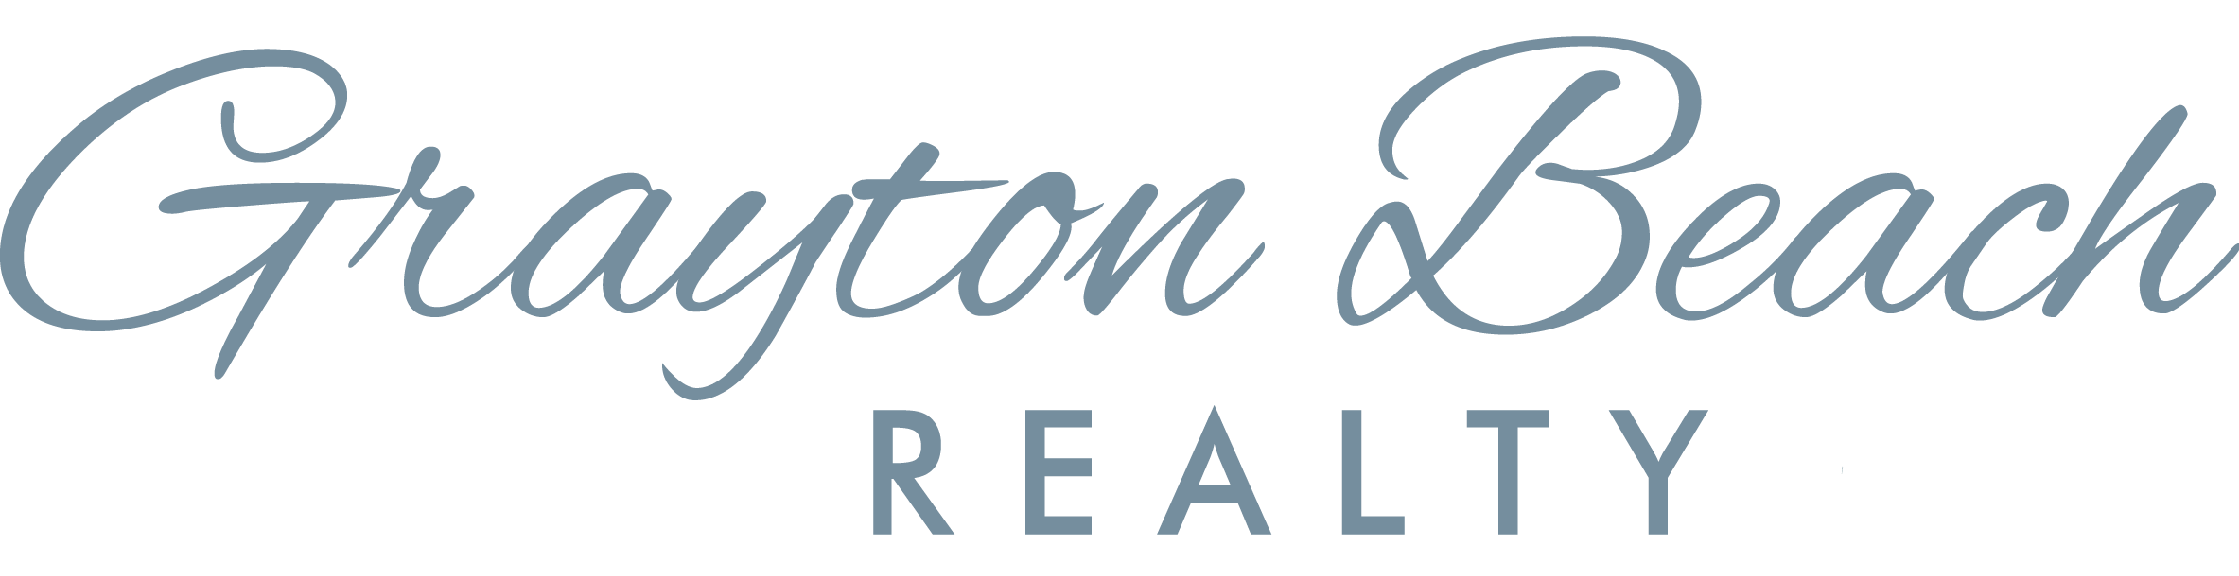 Grayton Beach Realty